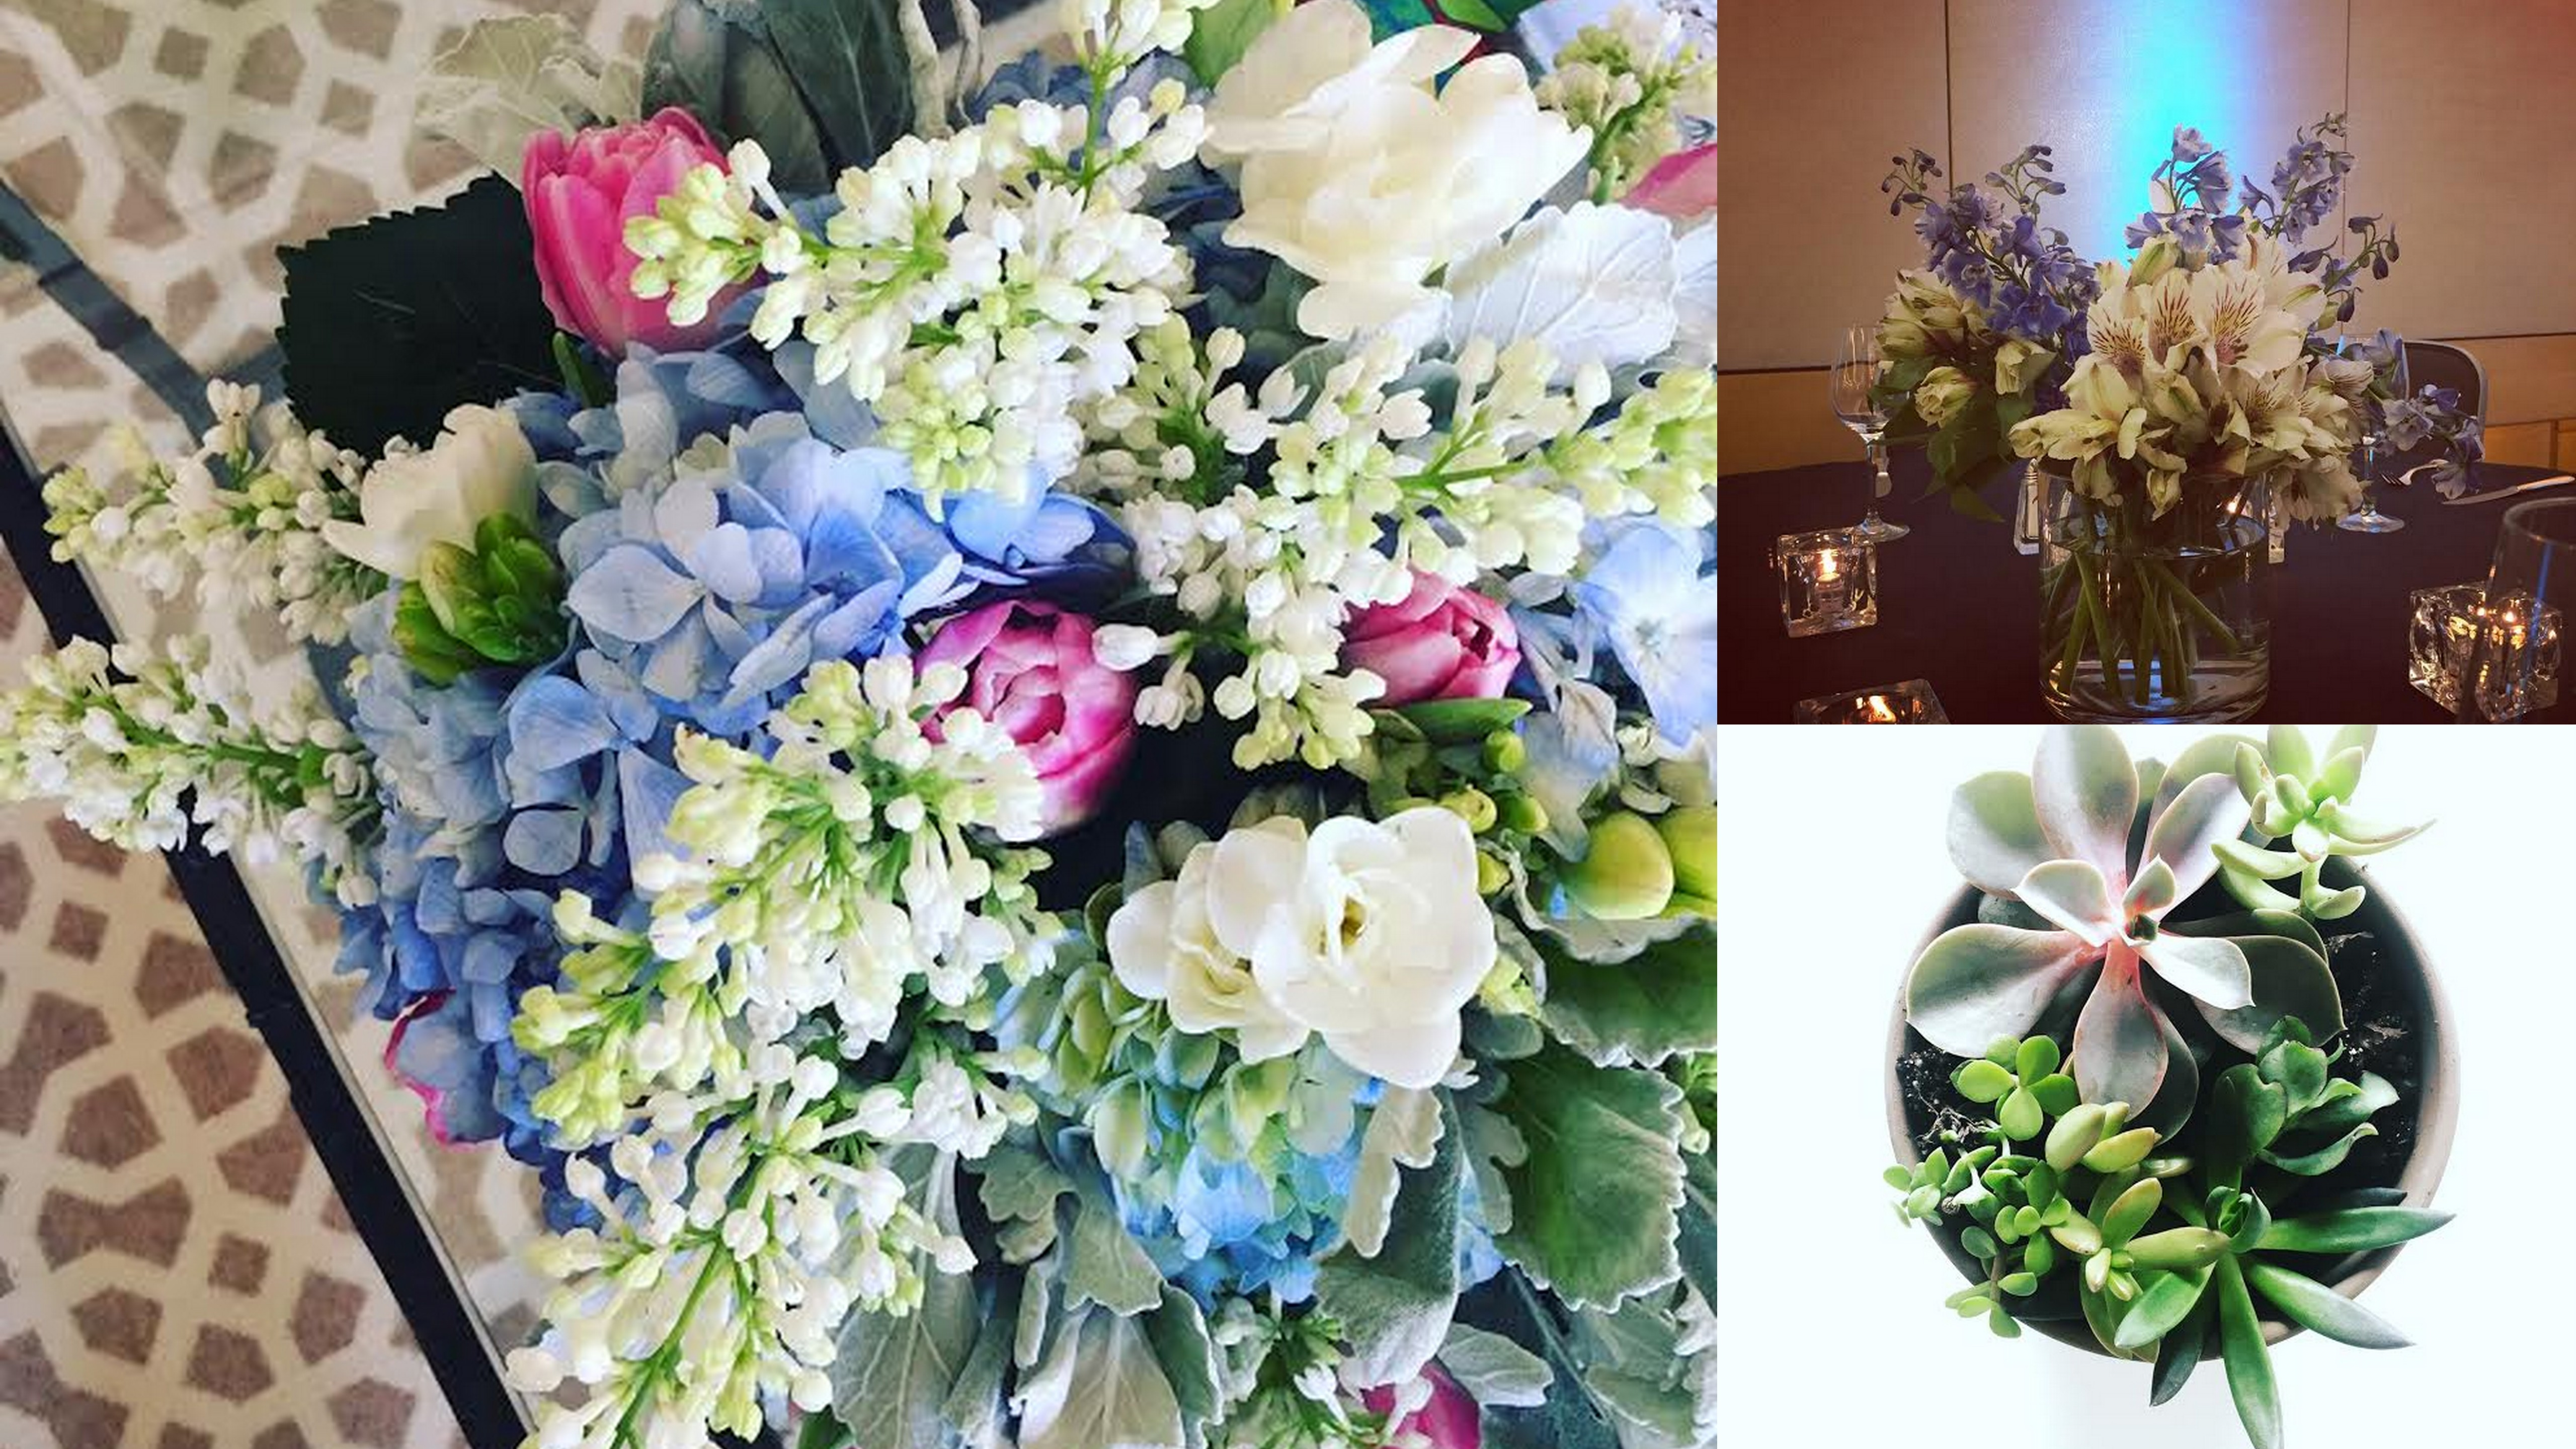 Elegance-and-Simplicity-Corporate-Floral-Design-Galas-Special-Events-DC-Florist-DC-Wedding-Planner-DC-Floral-Design-DC-Wedding-Planner